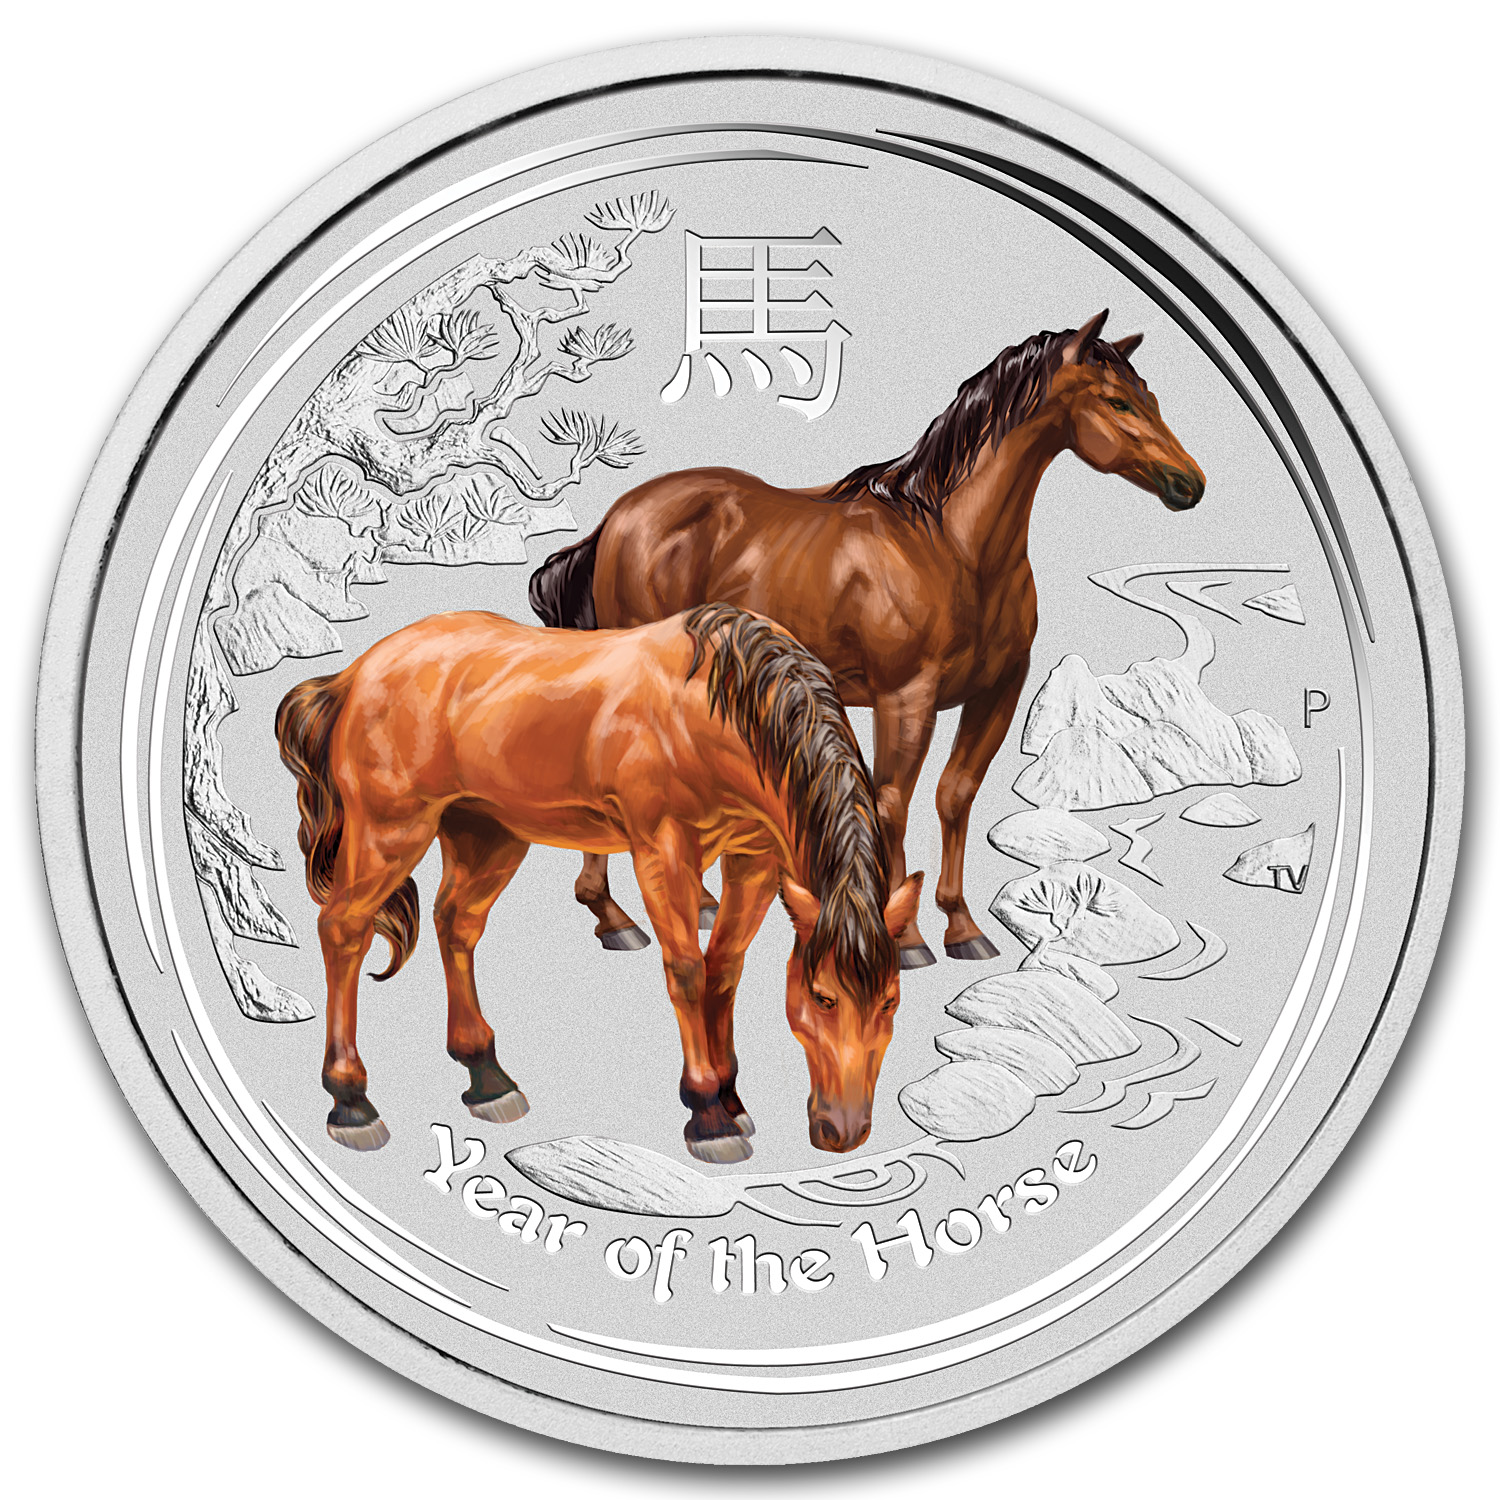 2014 1 oz Silver Australian Year of the Horse (Colorized)